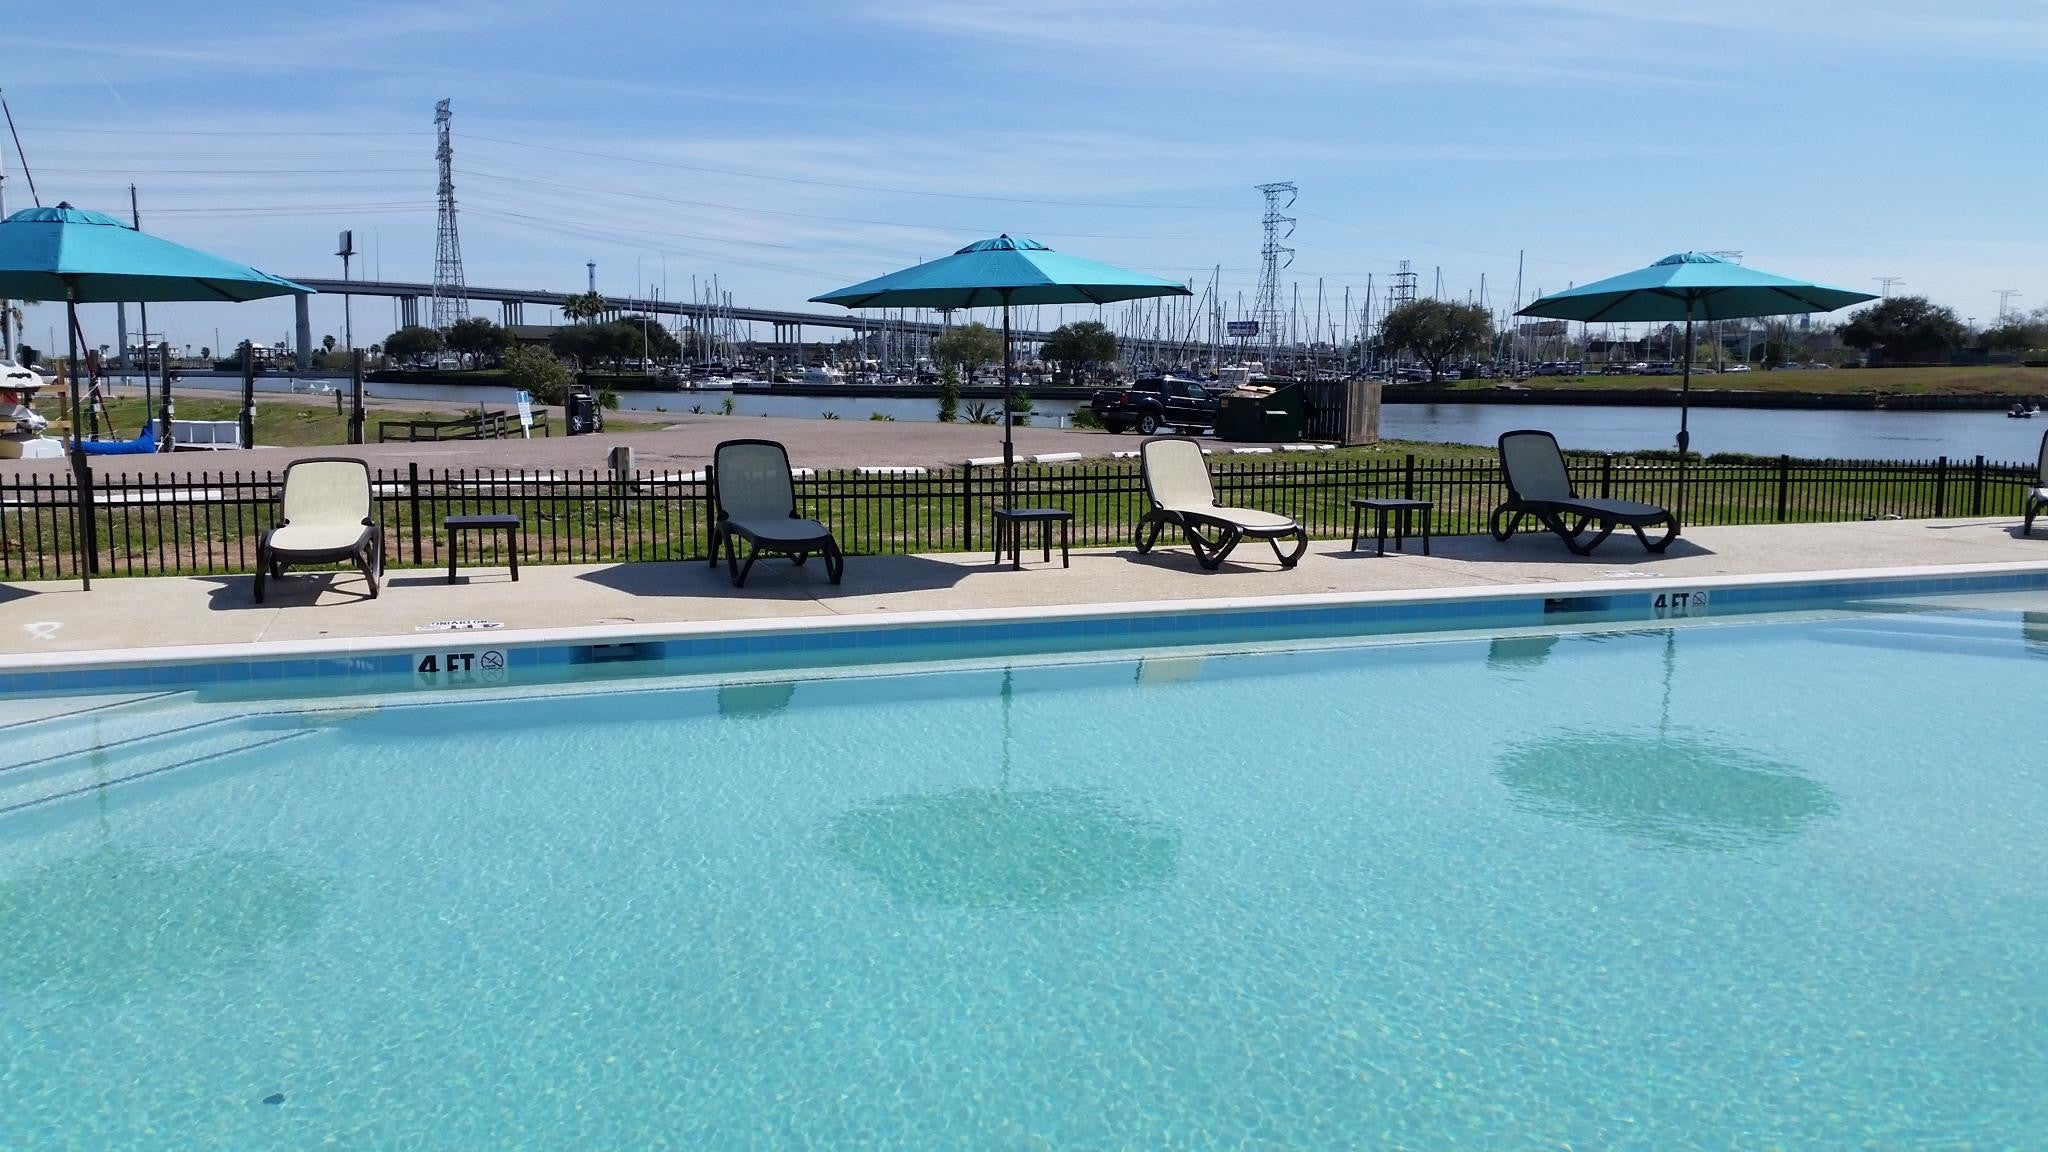 seabrook Marina new pool opens